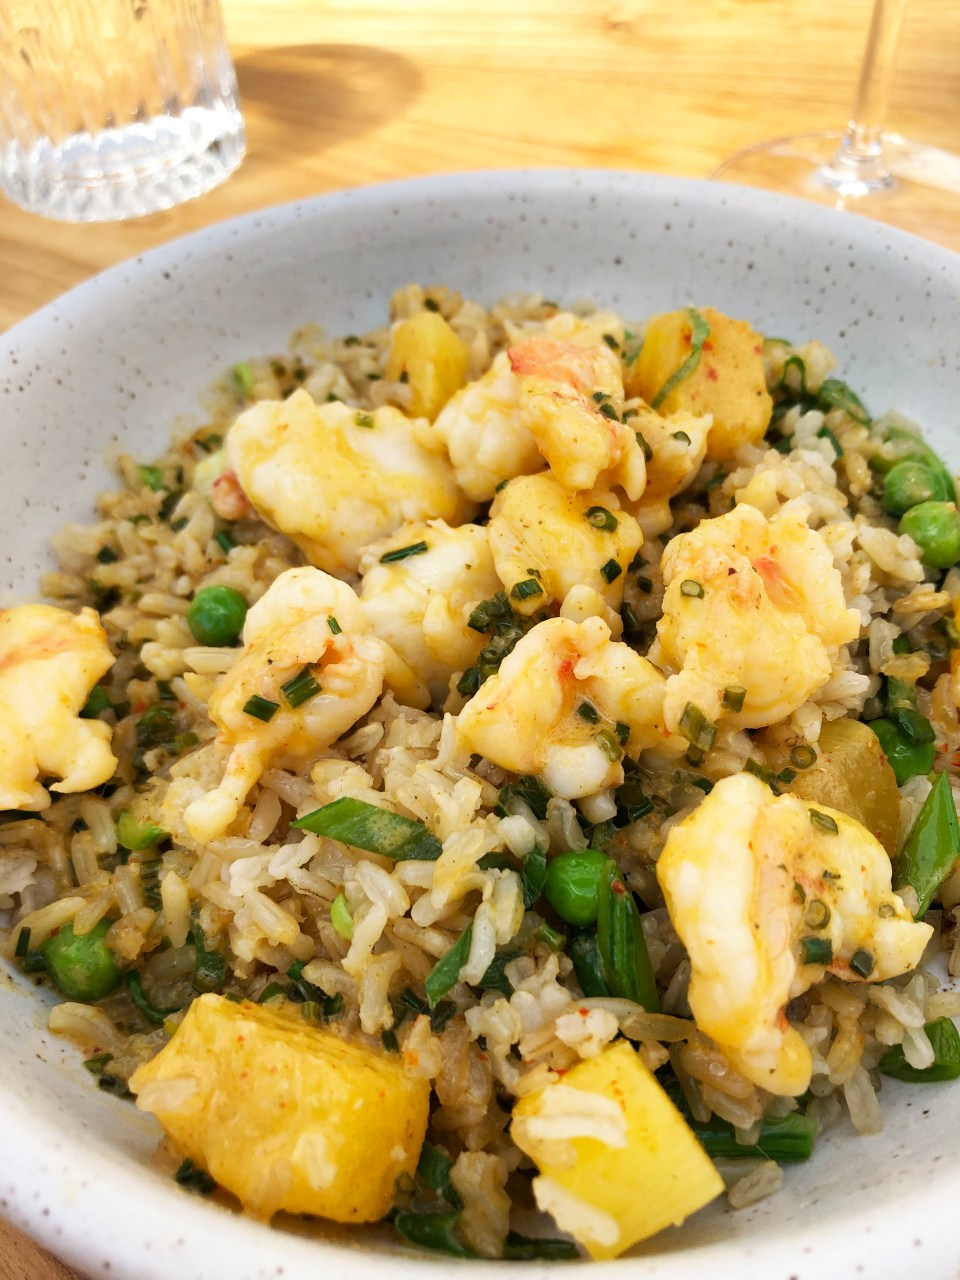 Lapeer - Chili-Garlic Shrimp & Brown Rice 1